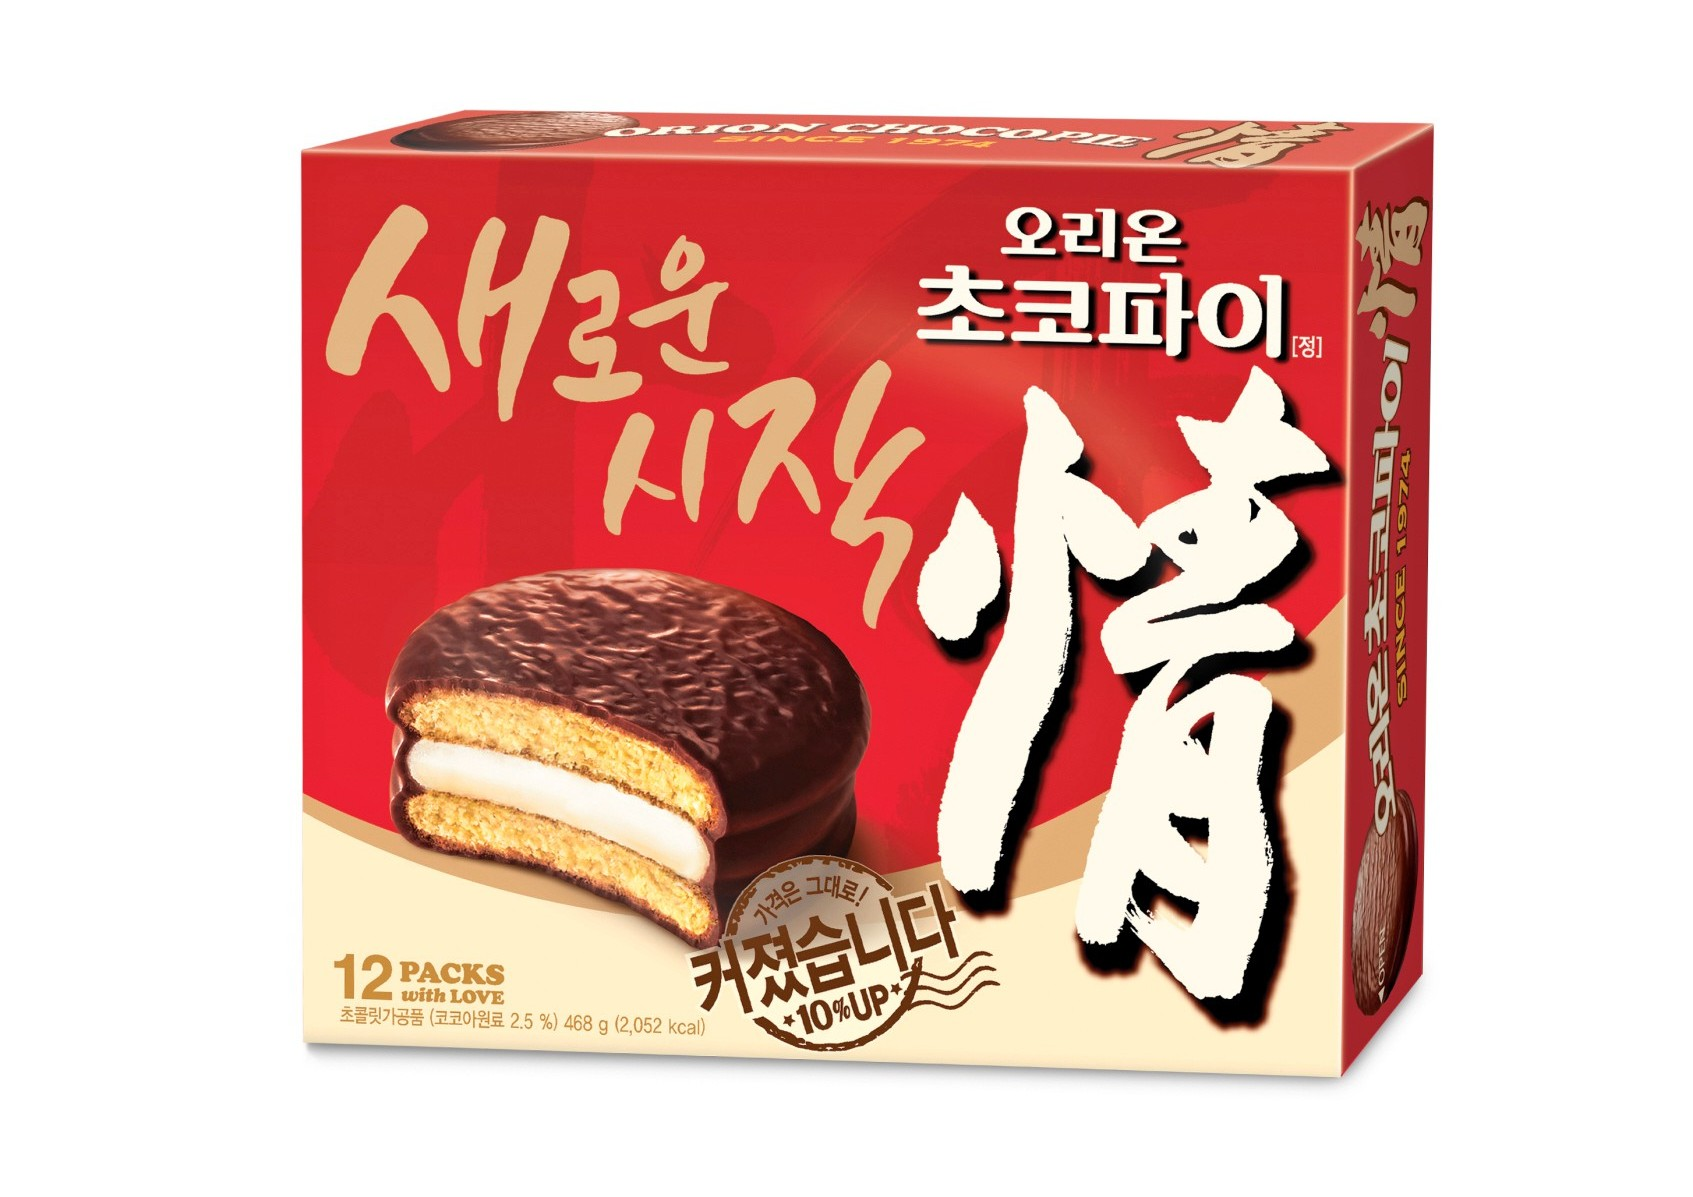 Choco Pie points the way for diplomacy with South Korea - Nikkei Asian  Review